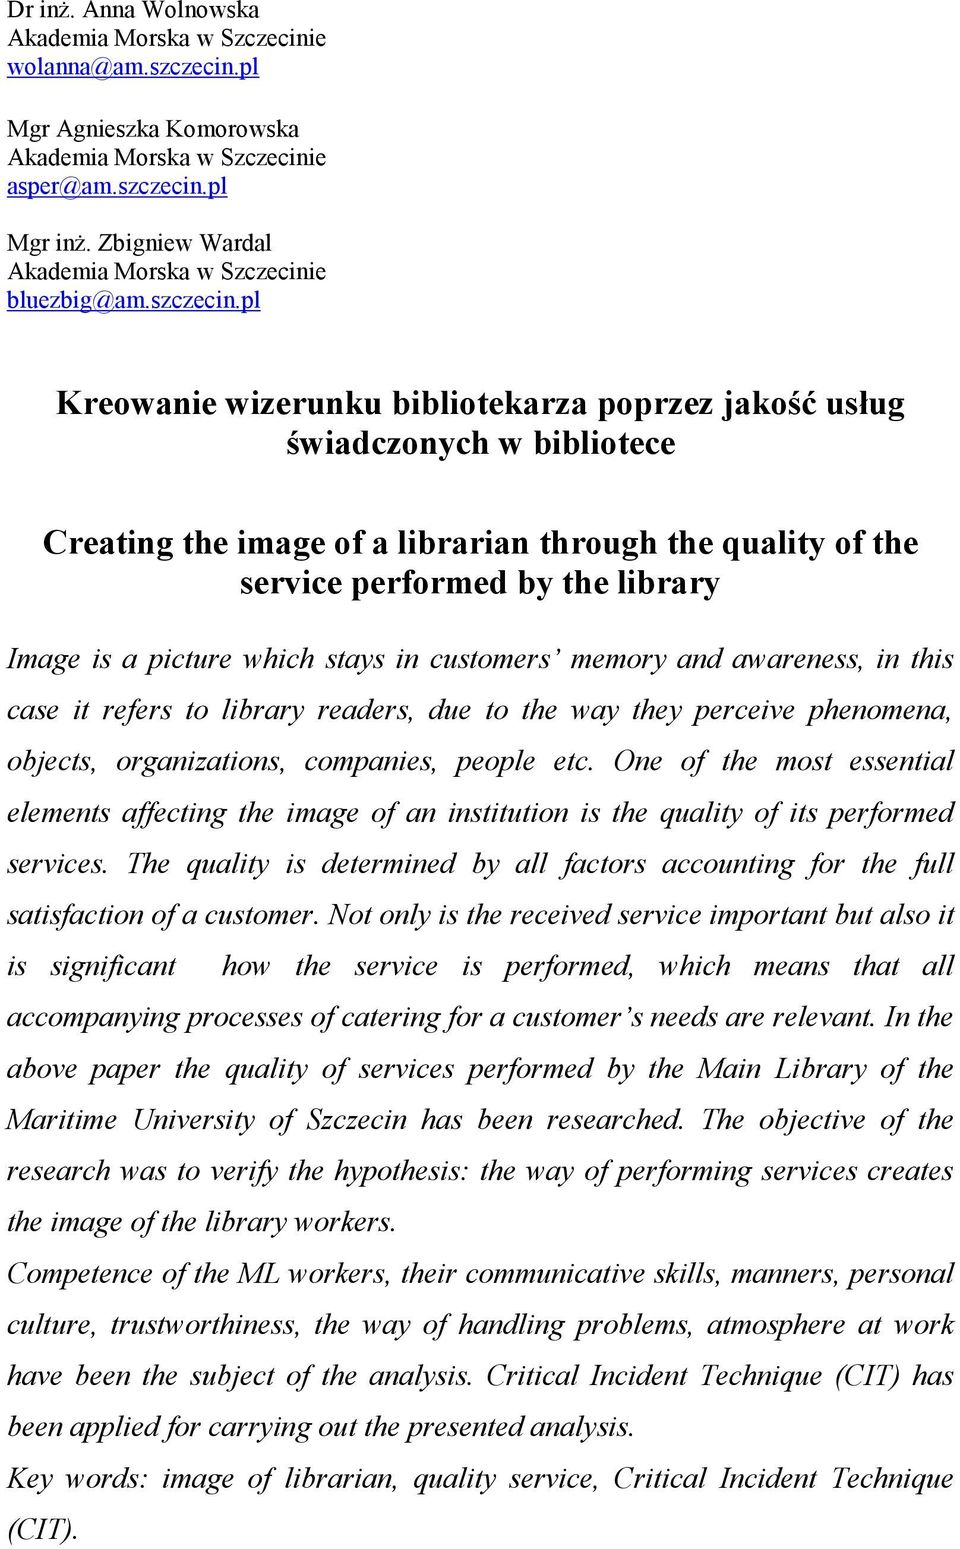 pl Kreowanie wizerunku bibliotekarza poprzez jakość usług świadczonych w bibliotece Creating the image of a librarian through the quality of the service performed by the library Image is a picture